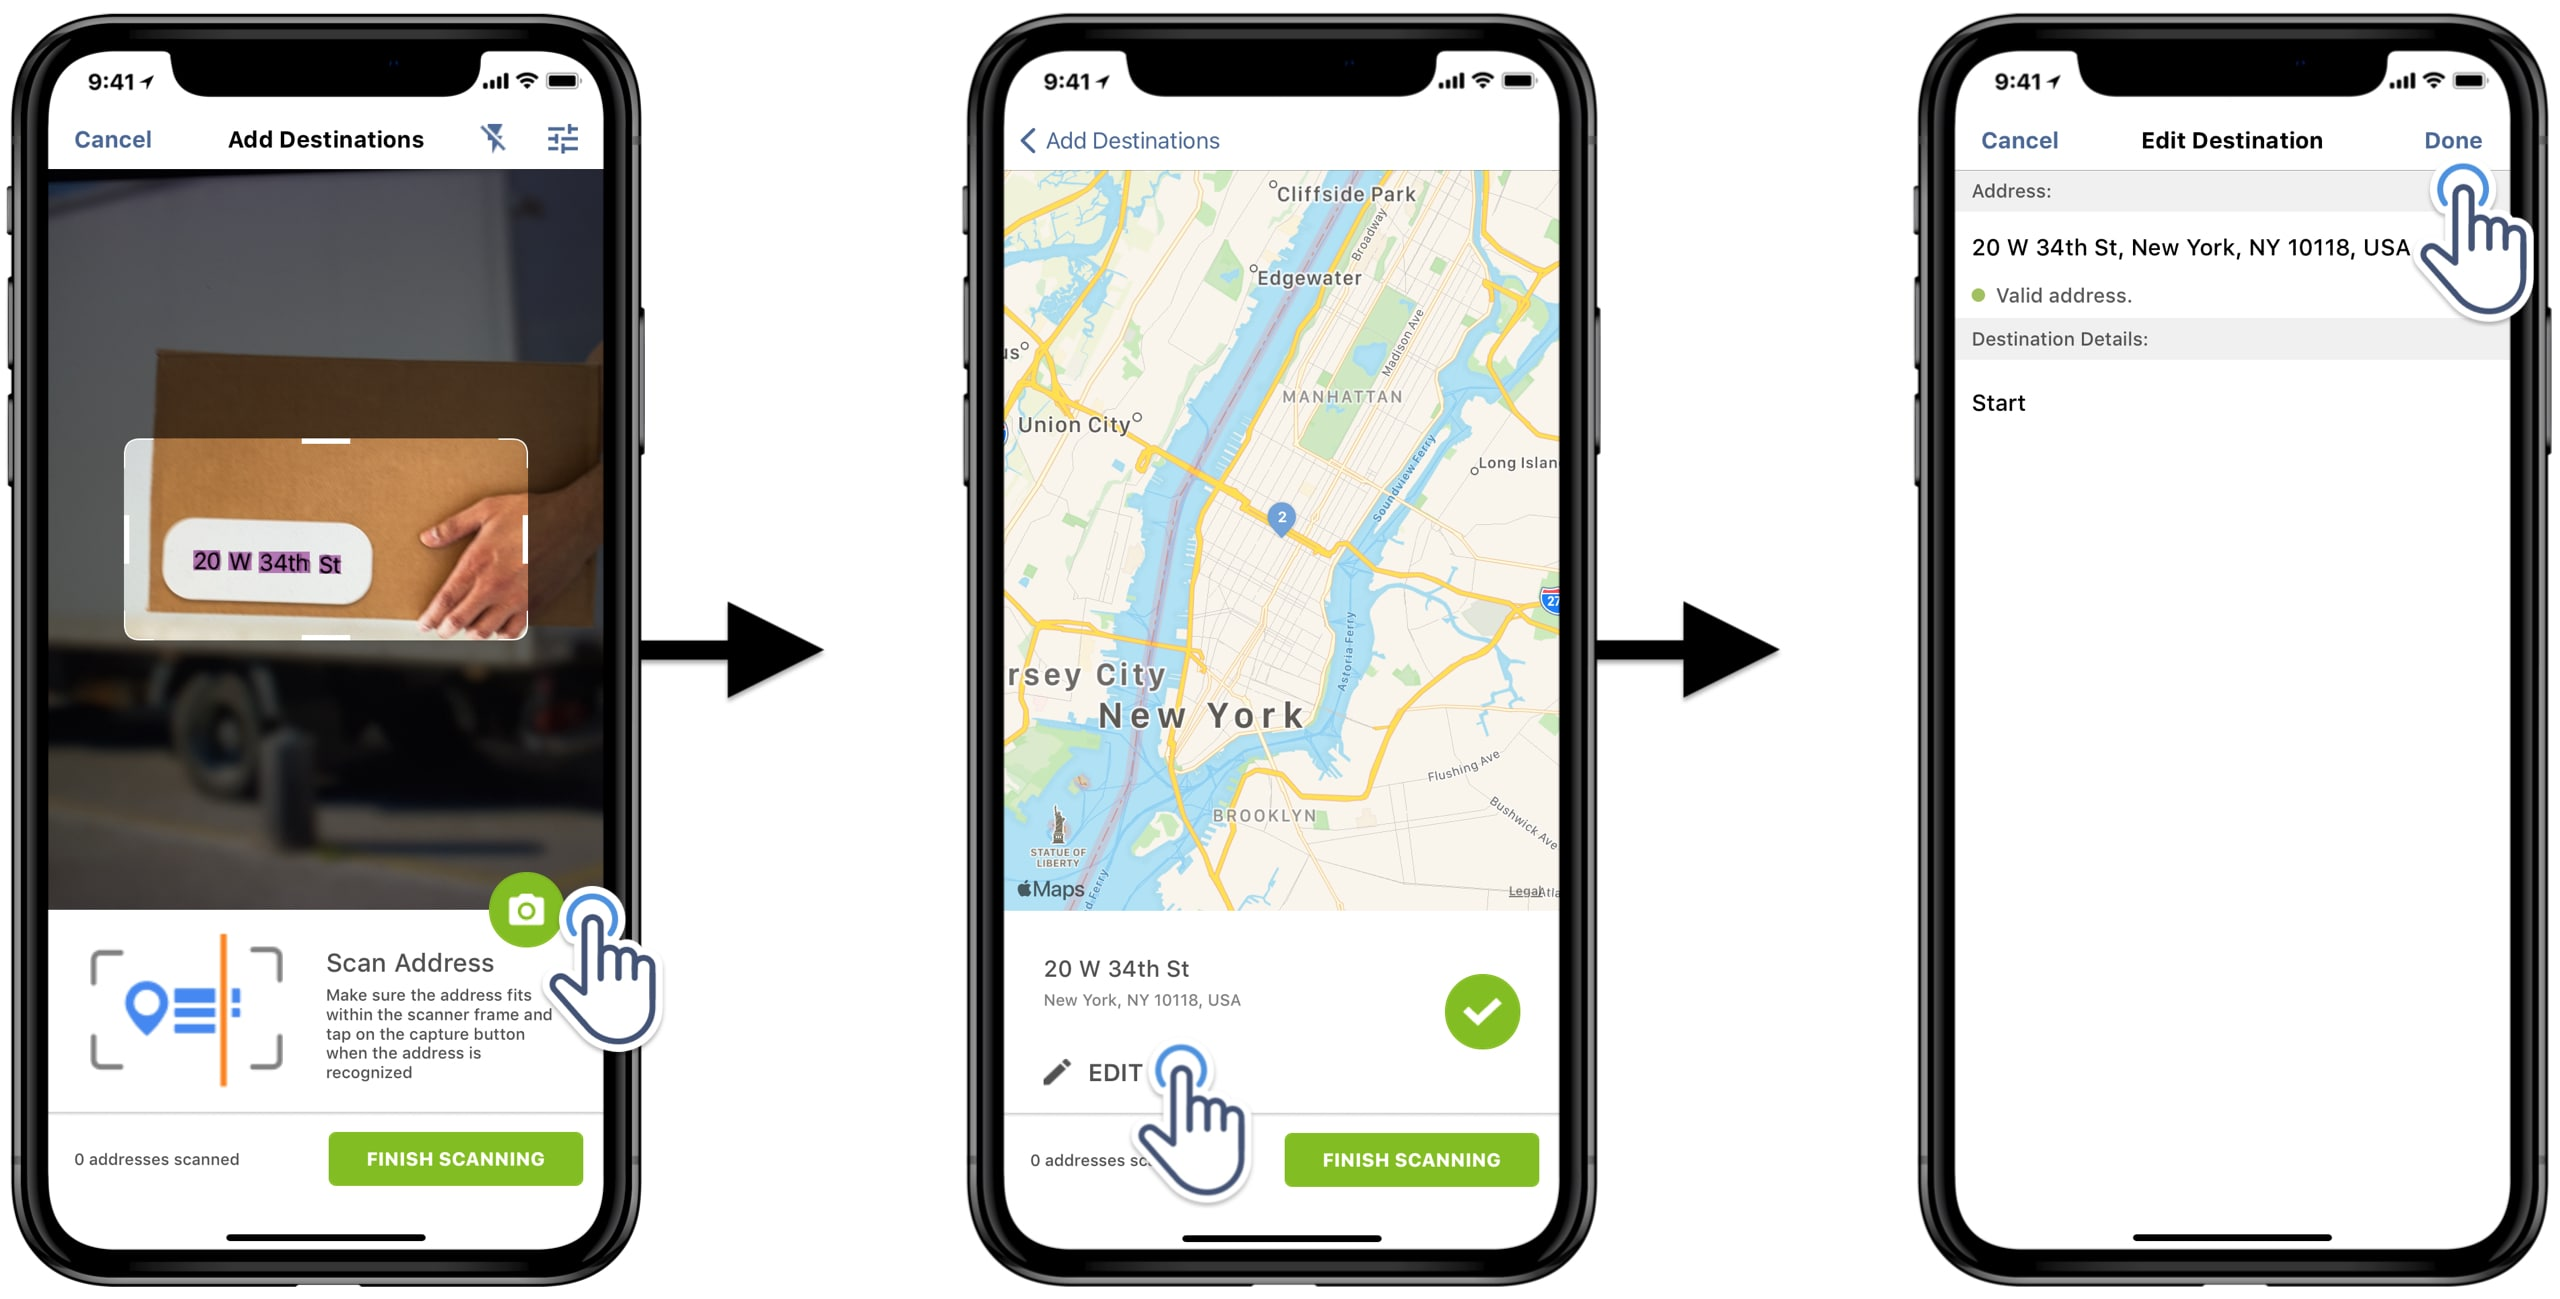 Use your iPhone or iPad camera to scan addresses and add addresses to the route on your route planner.